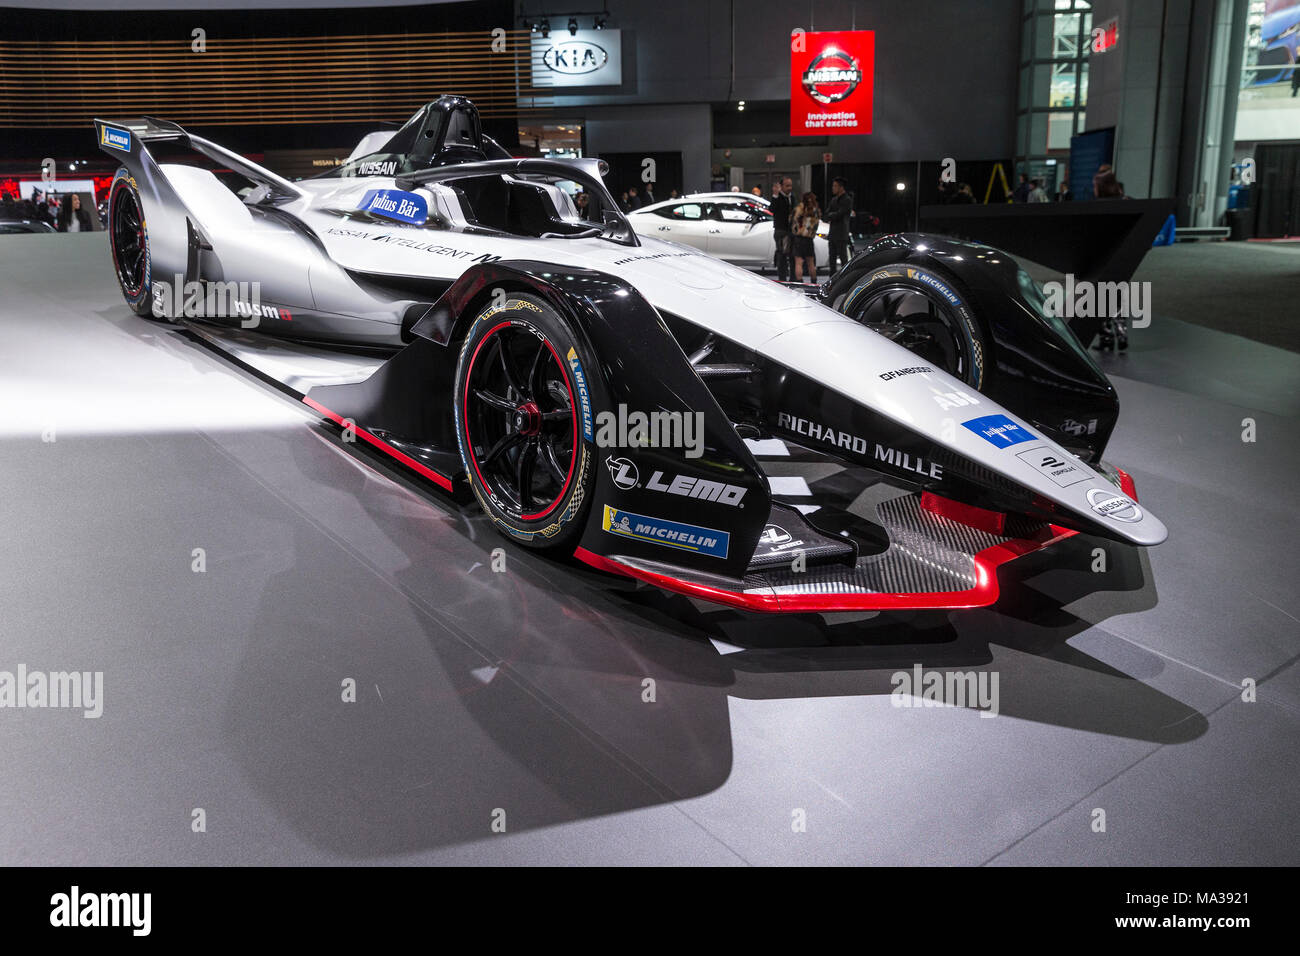 Nissan Race Car Formula E On Display In Nissan Pavilion At New - Jacob javits center car show 2018